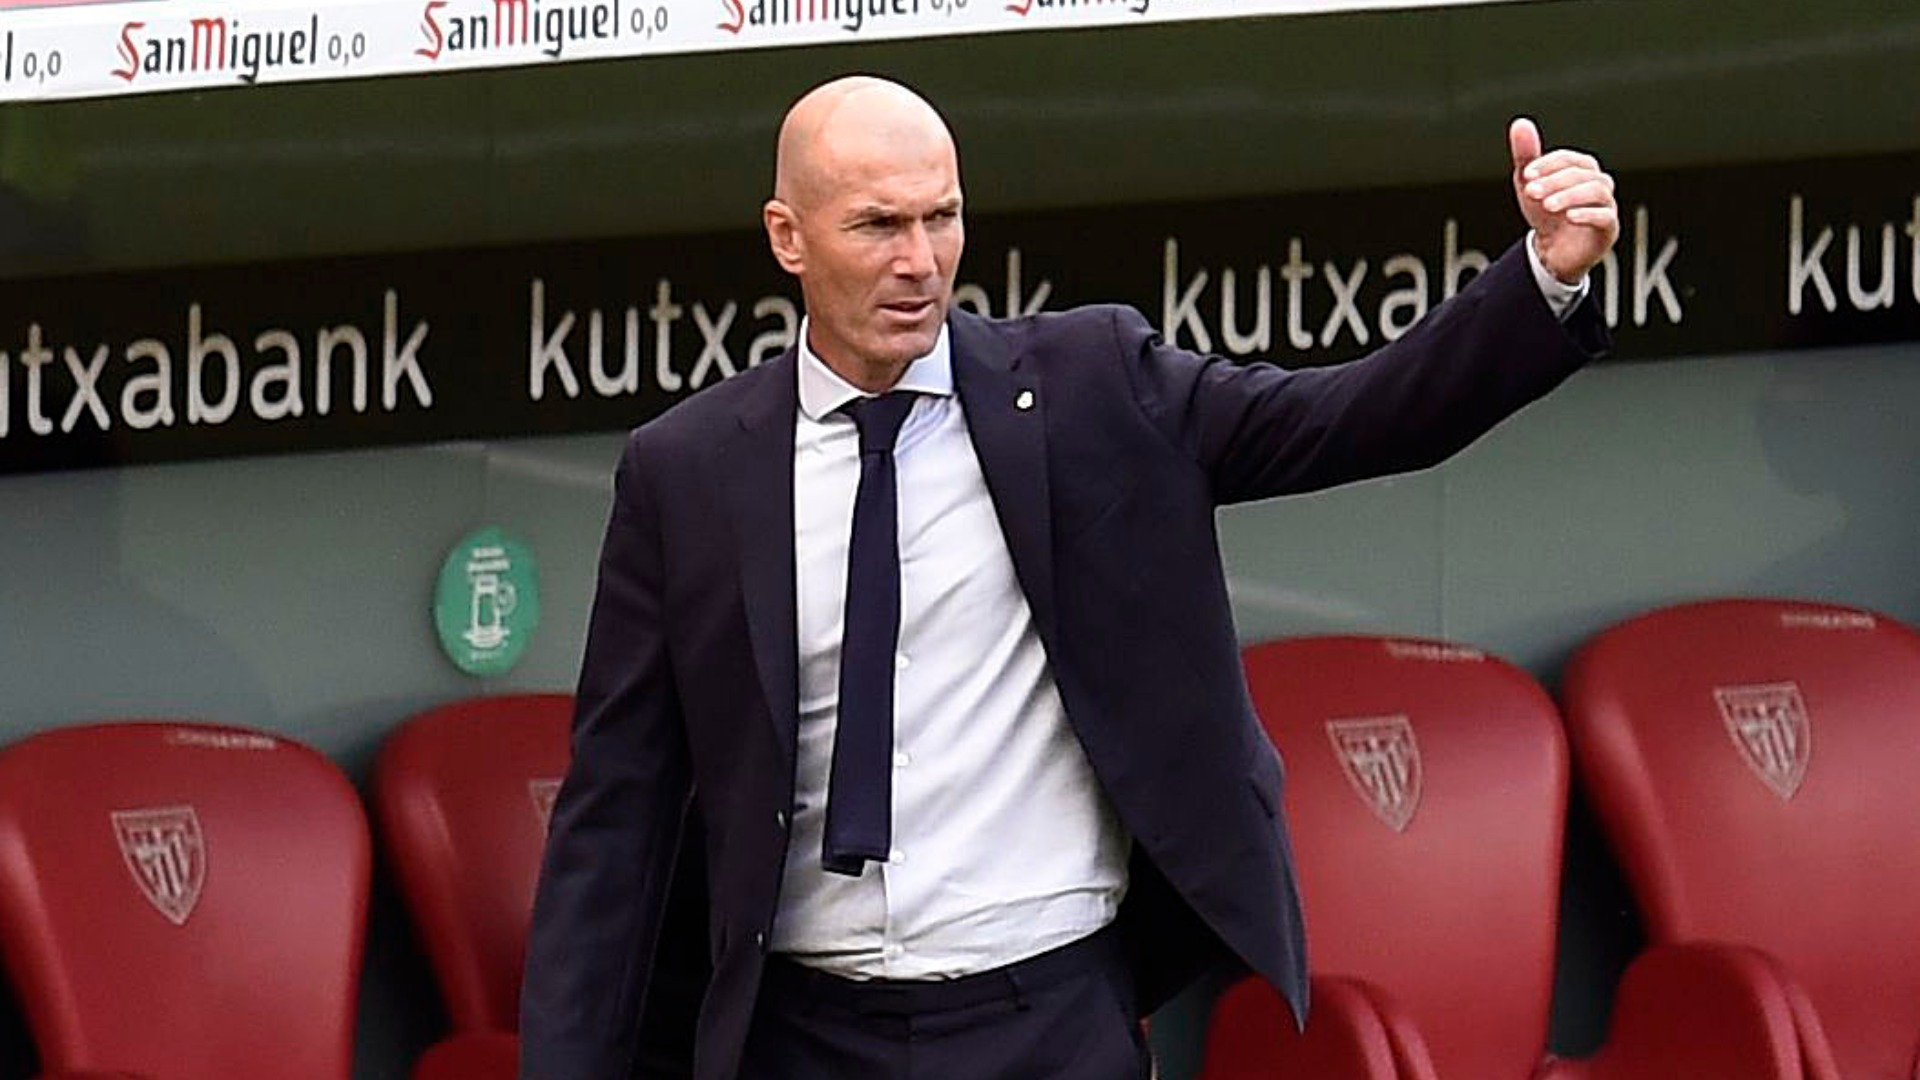 Madrid players can 'disconnect' ahead of Champions League, says Zidane